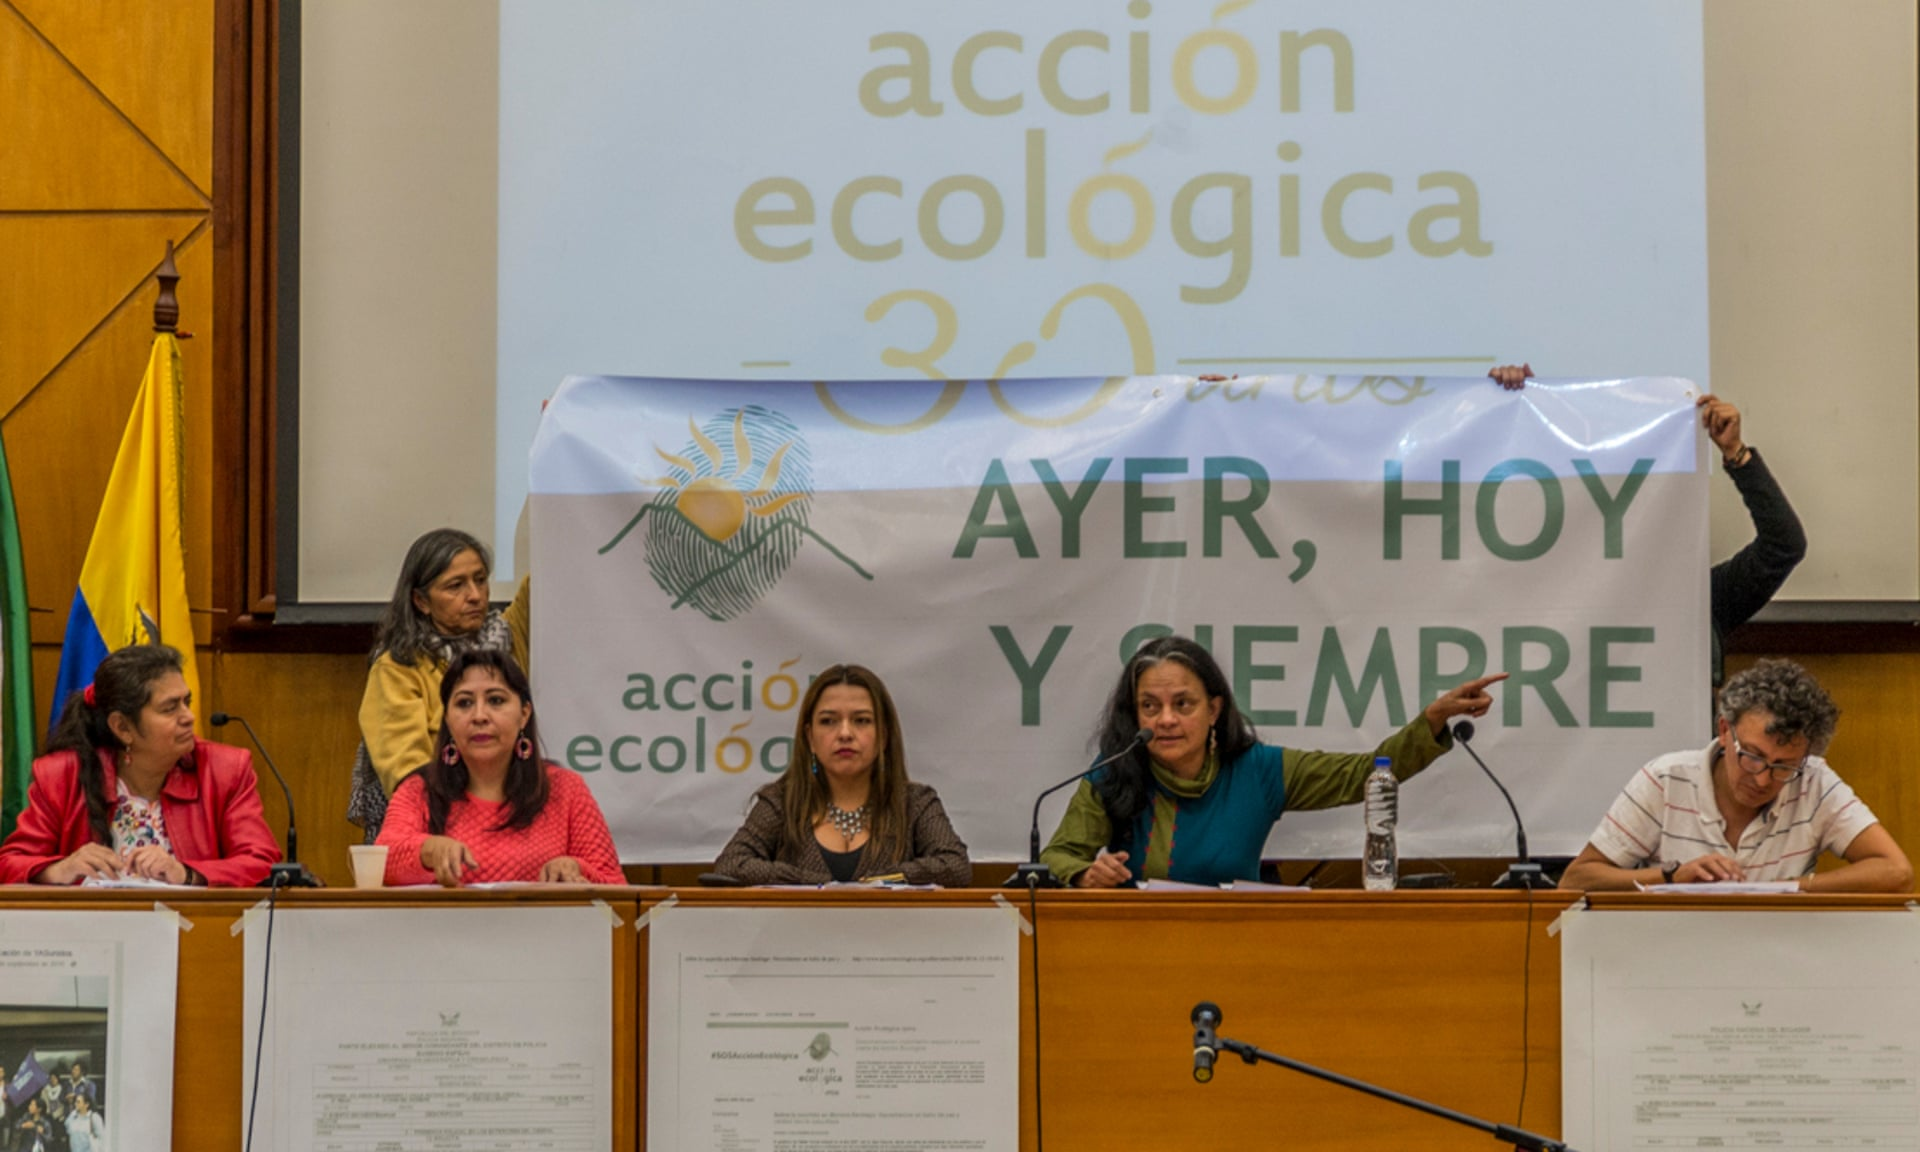 Acción Ecológica representatives speak in Quito yesterday before formally submitting their responses to the government's accusations. Photograph: Zitouna Auryn